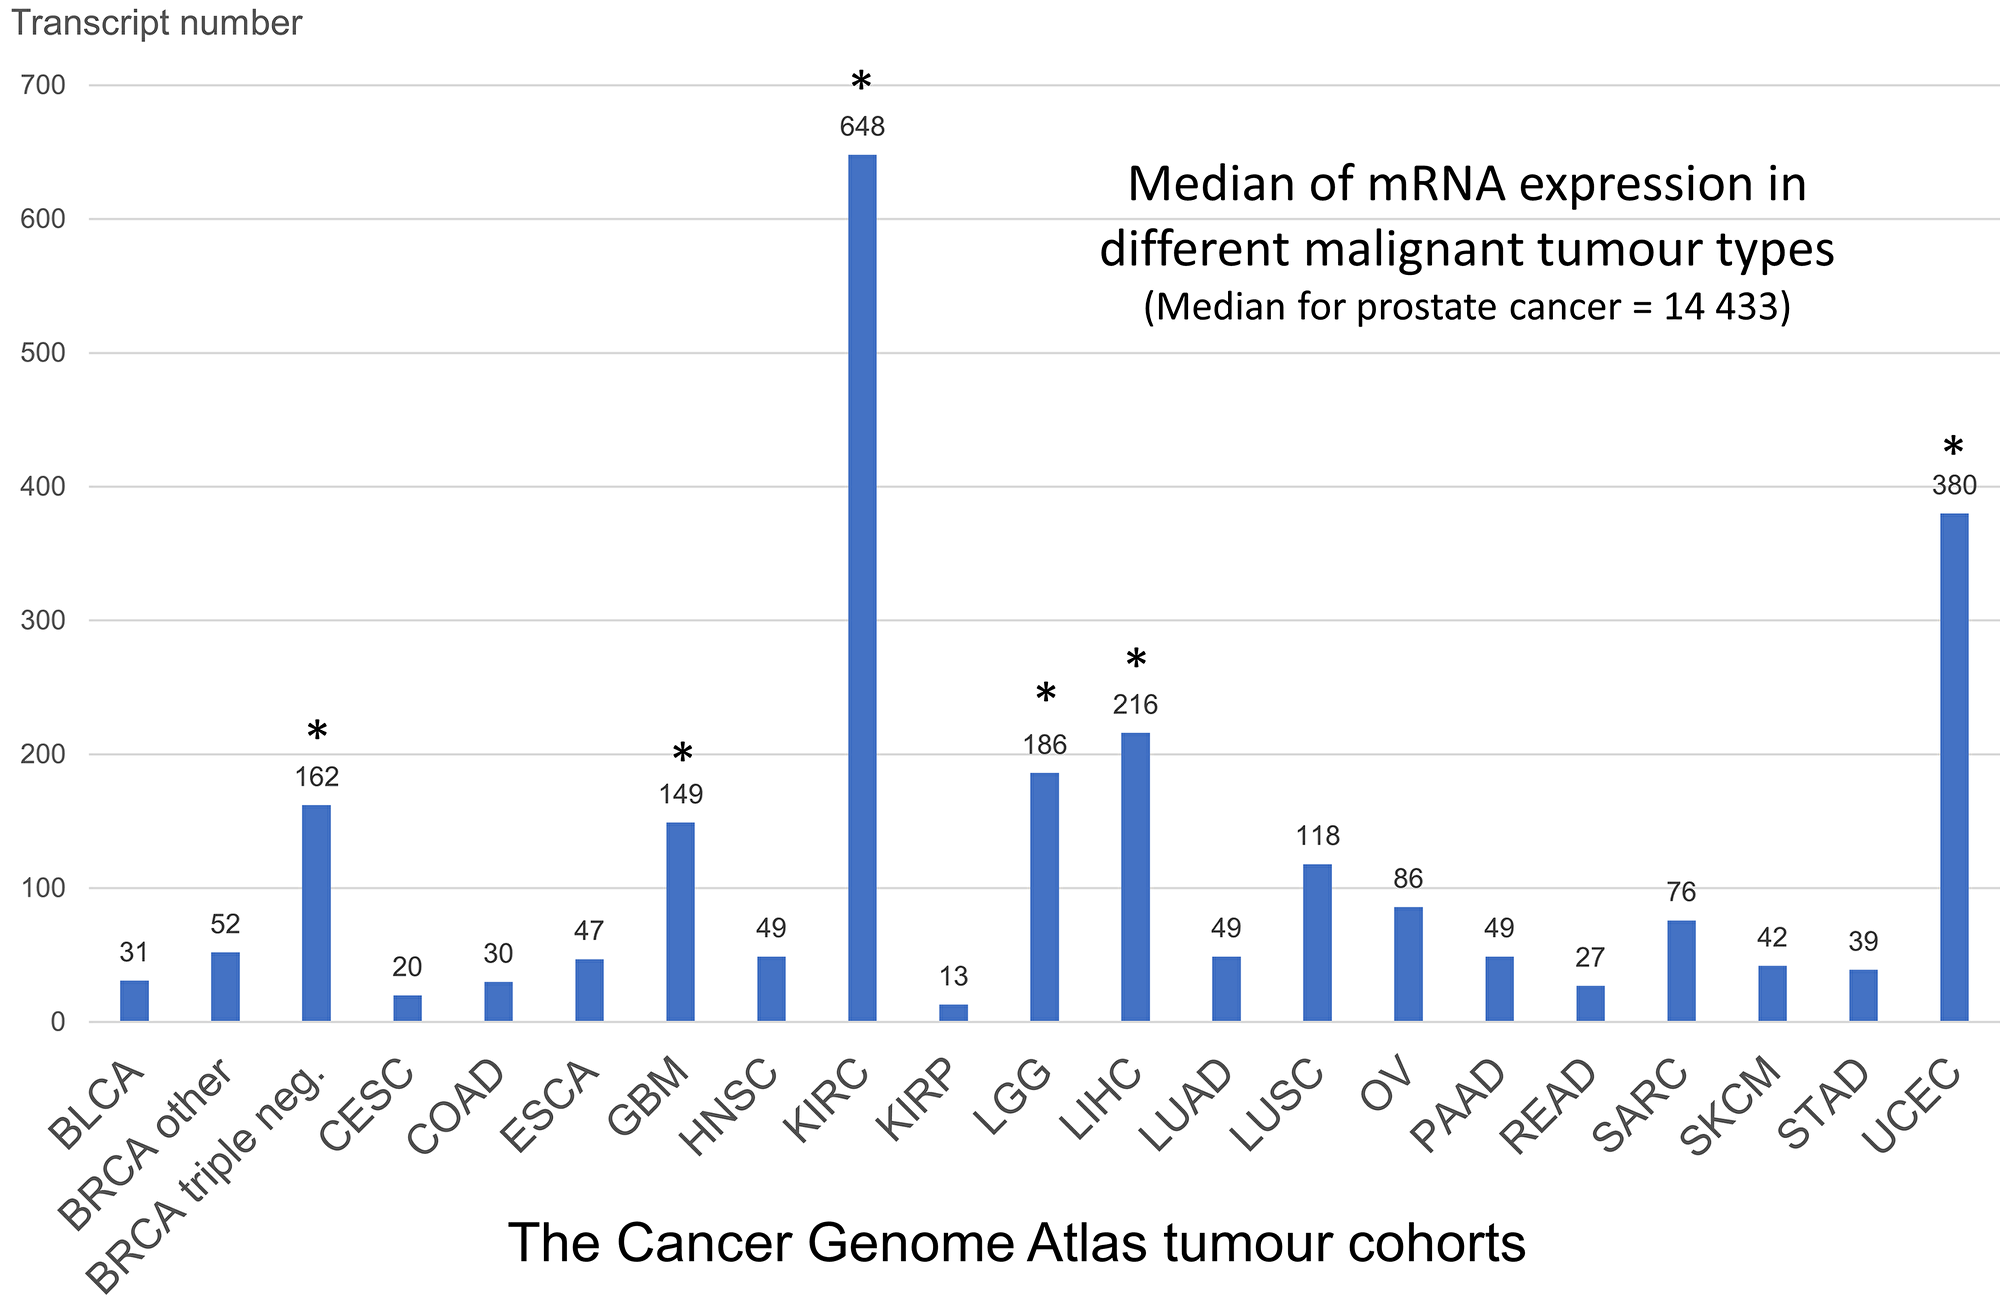 Summary analysis of FOLH1 (PSMA) mRNA expression in different tumor types of The Cancer Genome Atlas (see methods).